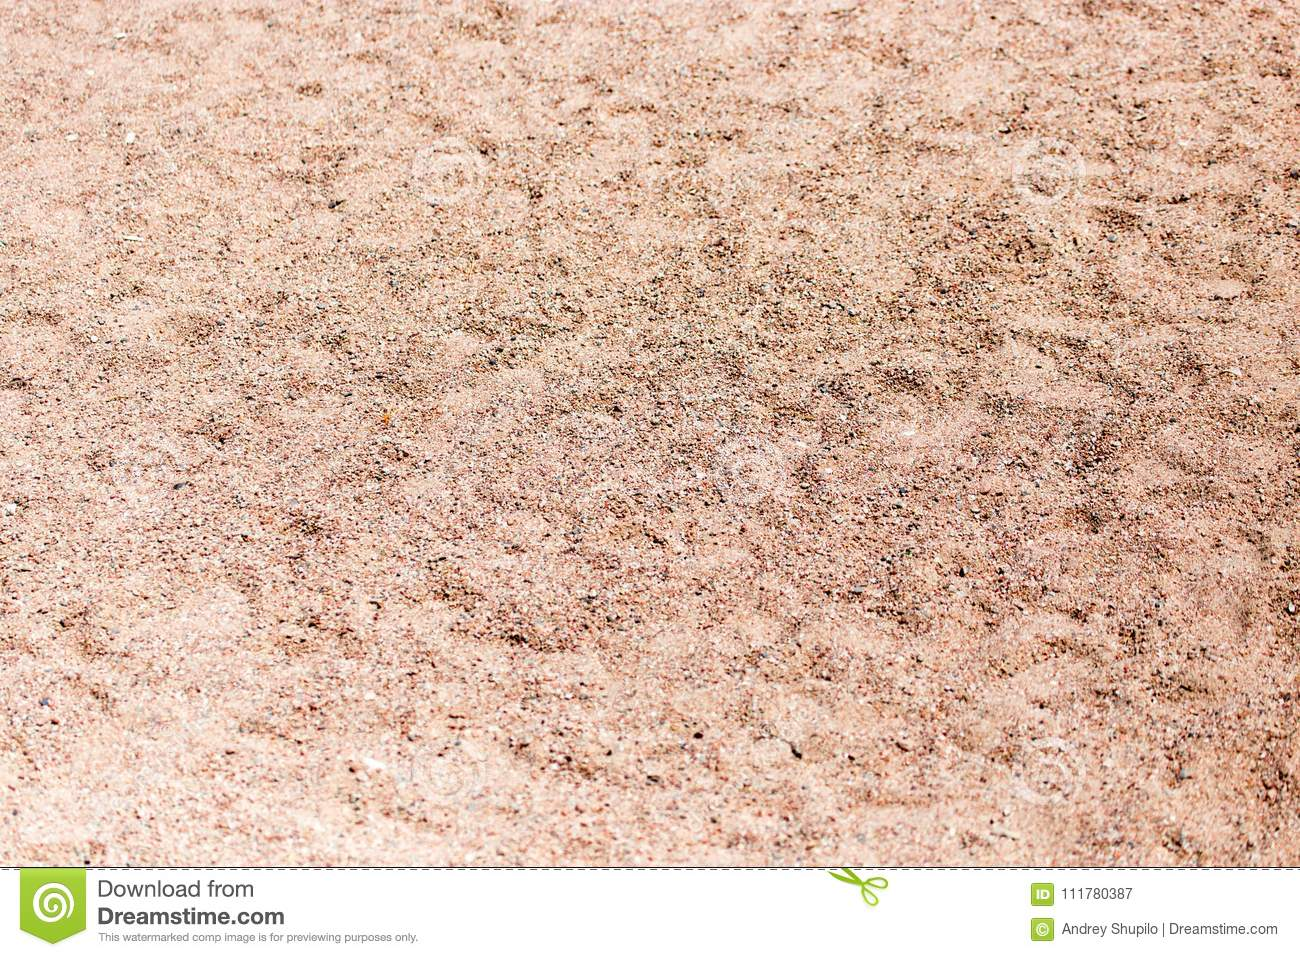 The sand on the beach as background